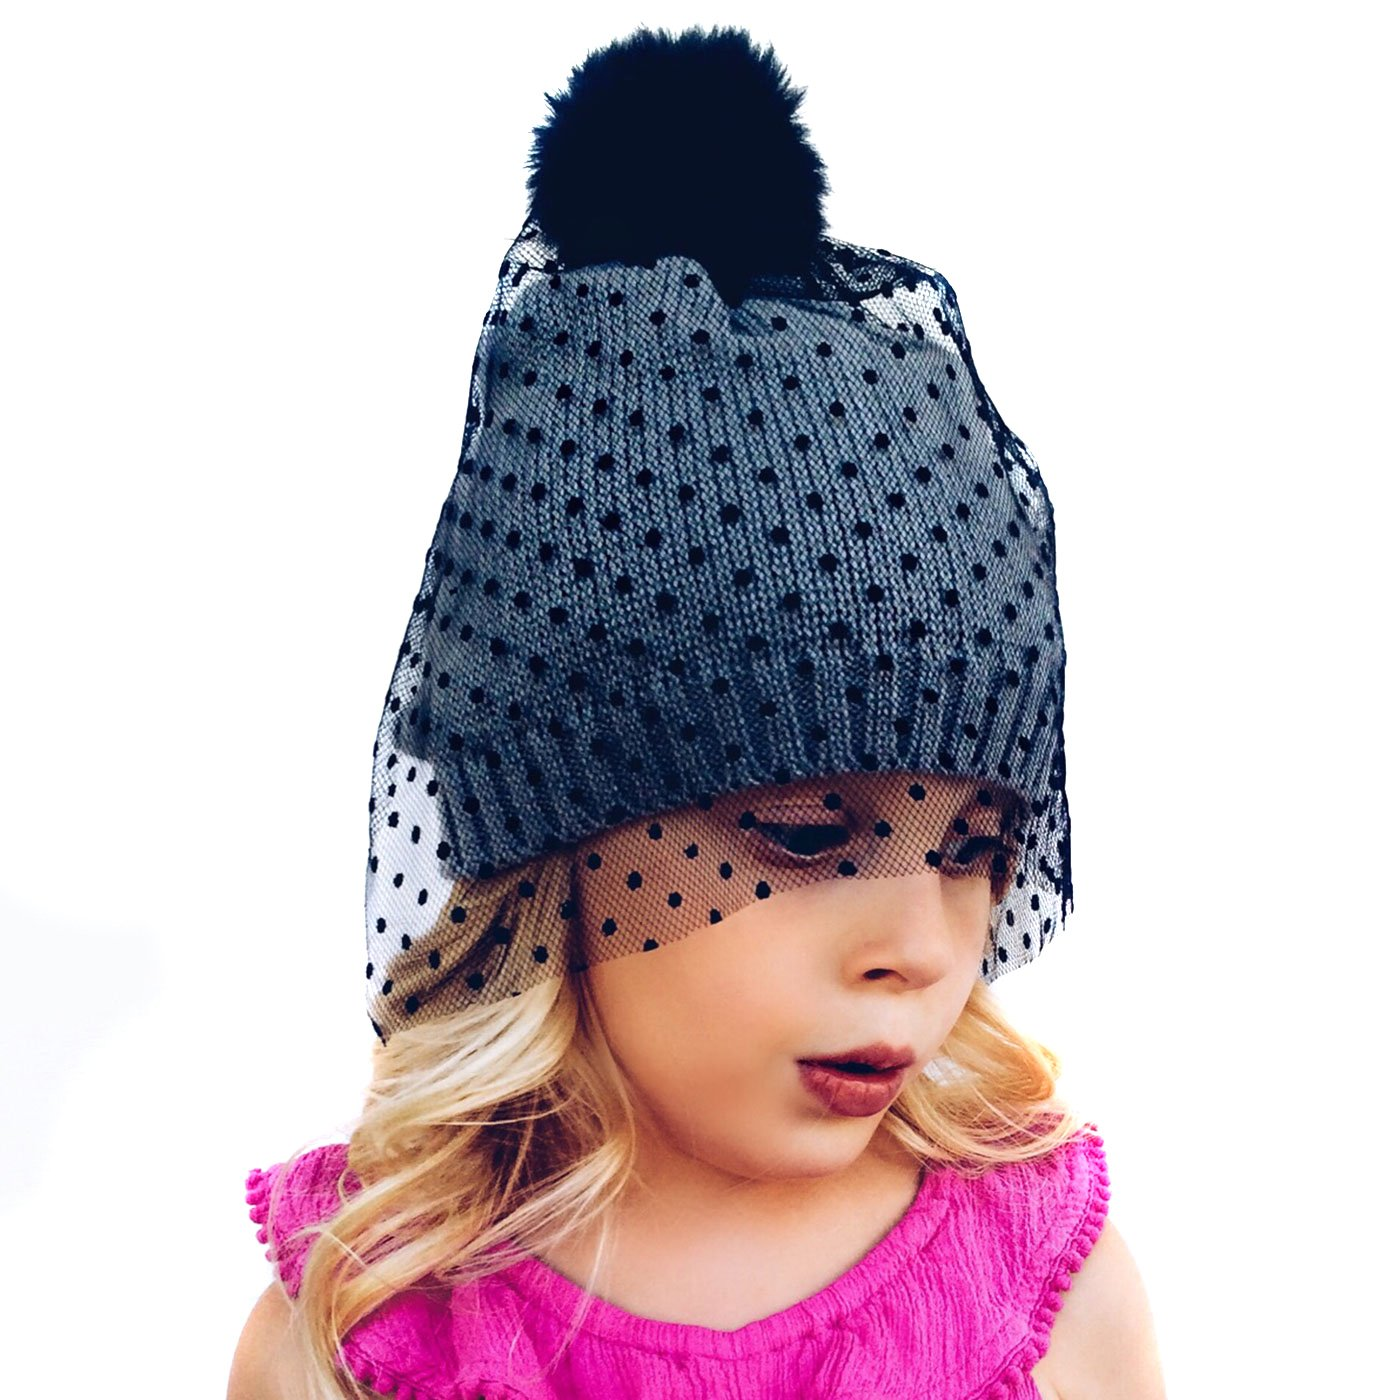 DESIGNER WINTER HAT WITH VEIL  Neon Eaters has been a leader in funky knit  hats since 2012. Their fun take on boys   girls winter hats make boring  beanies a ... 97196e13f6b2